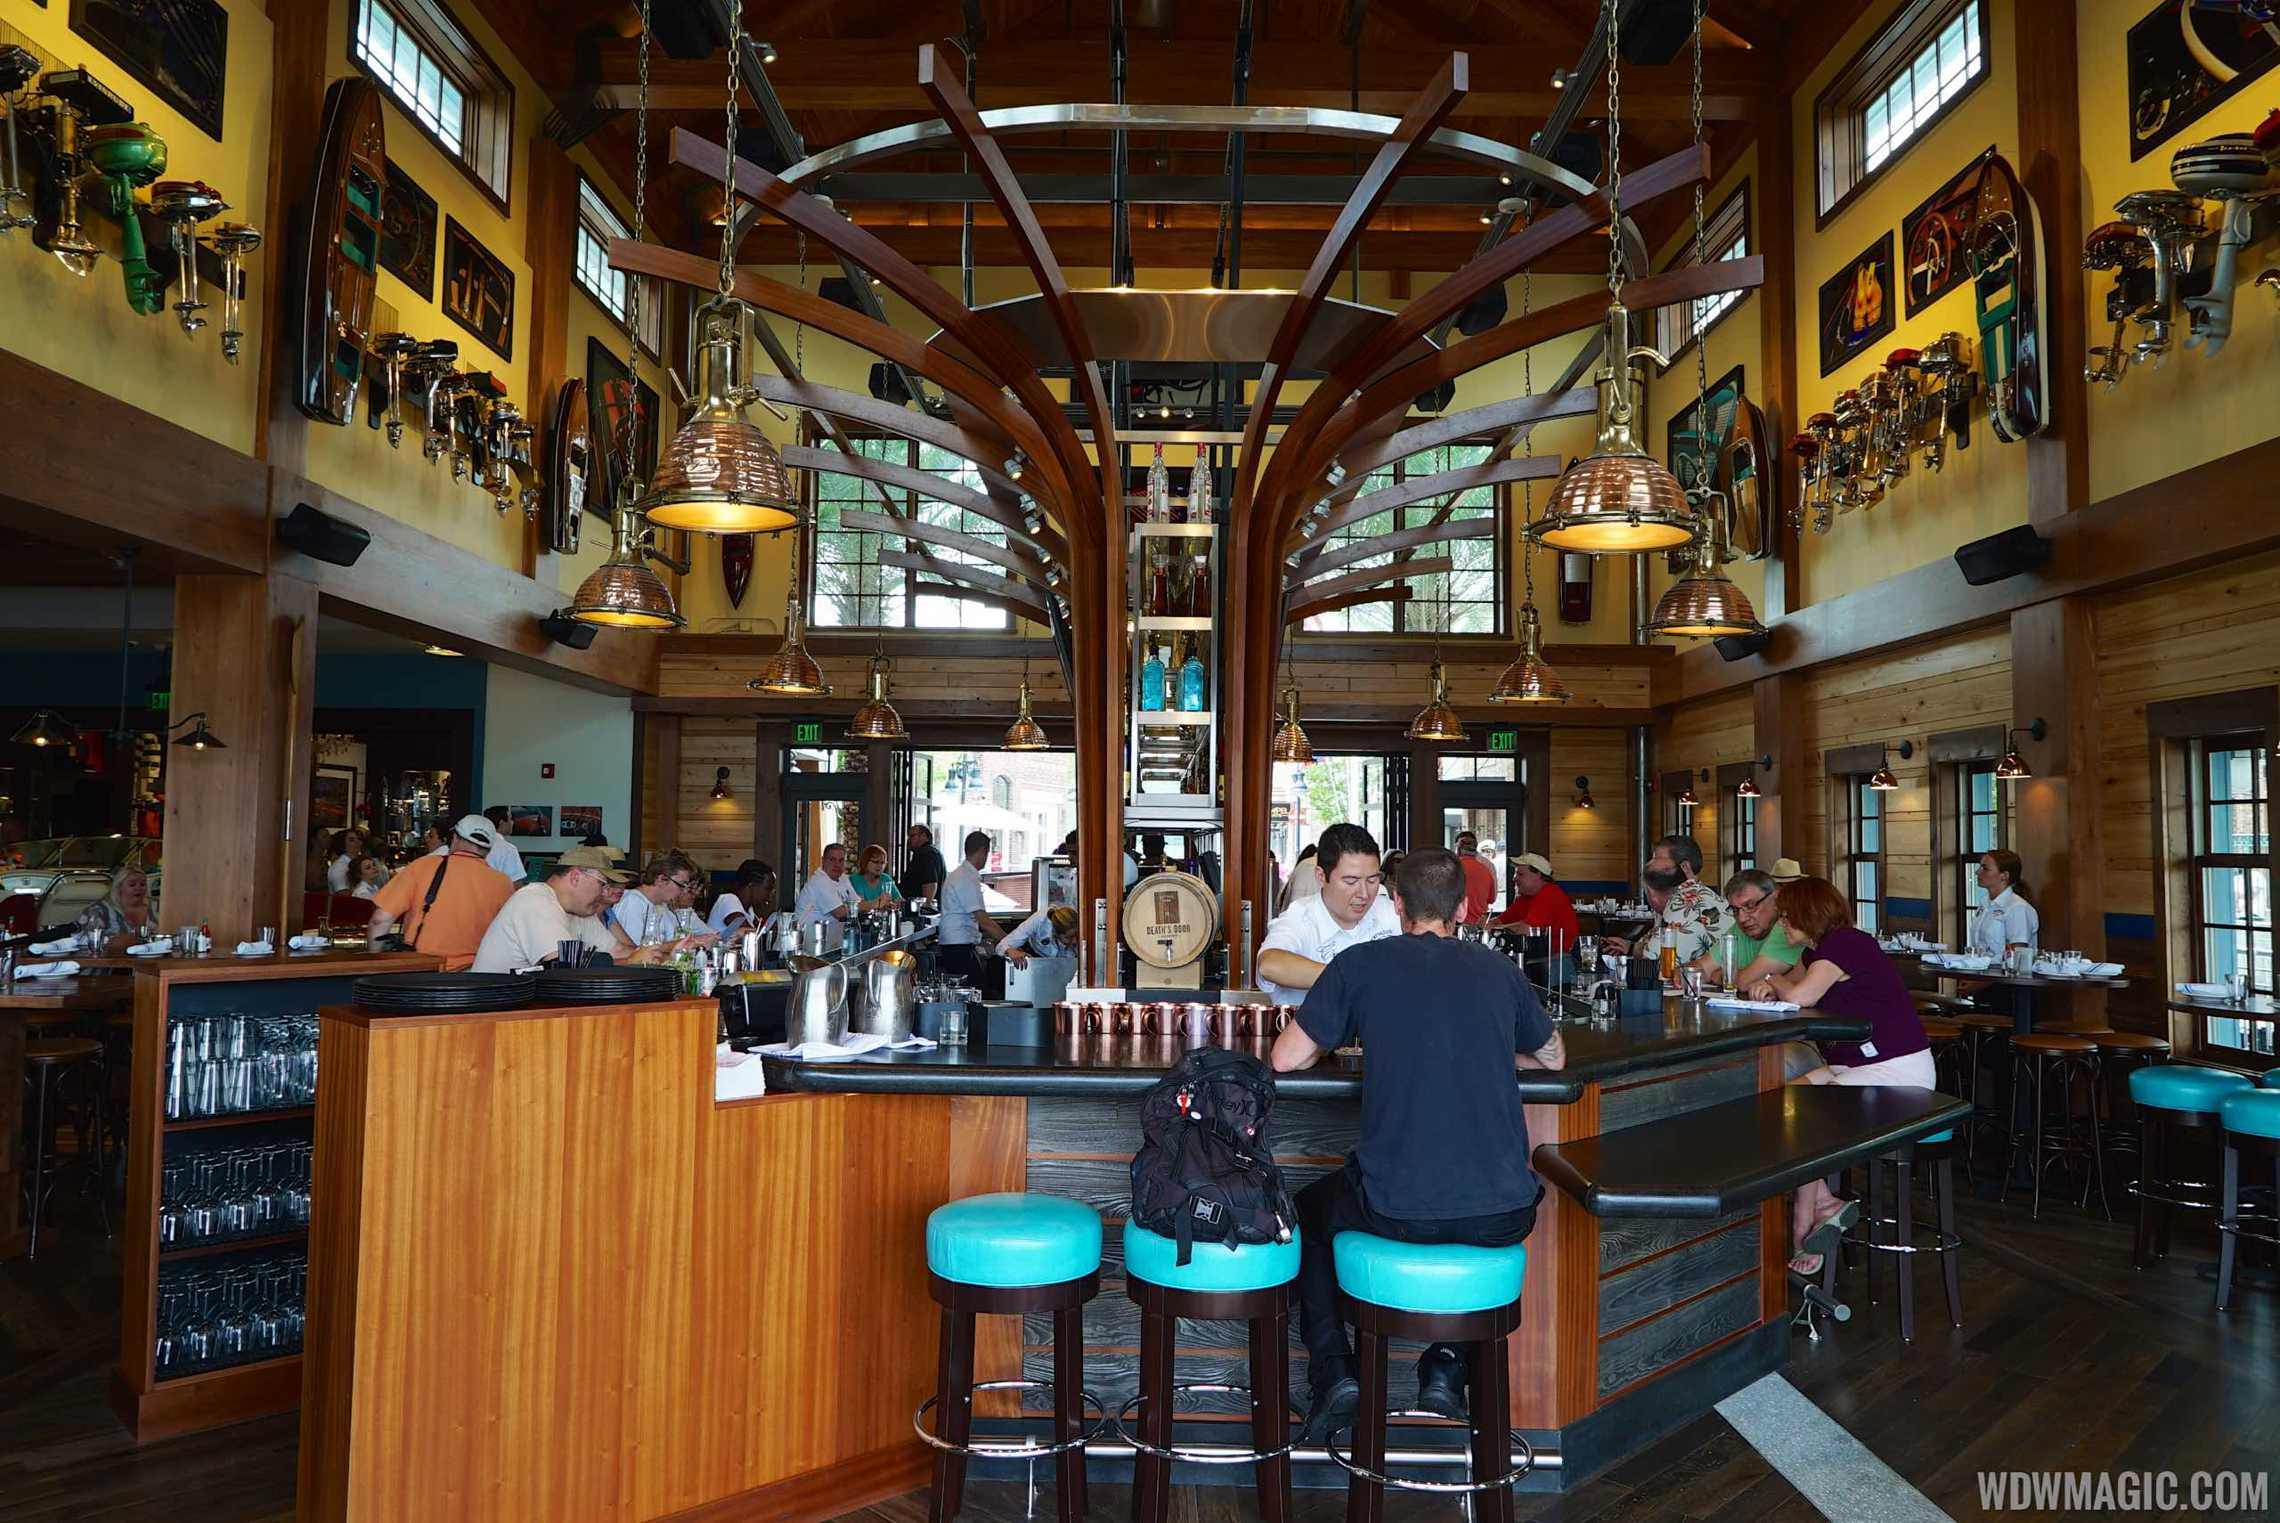 The BOATHOUSE - The Captains Raw Bar